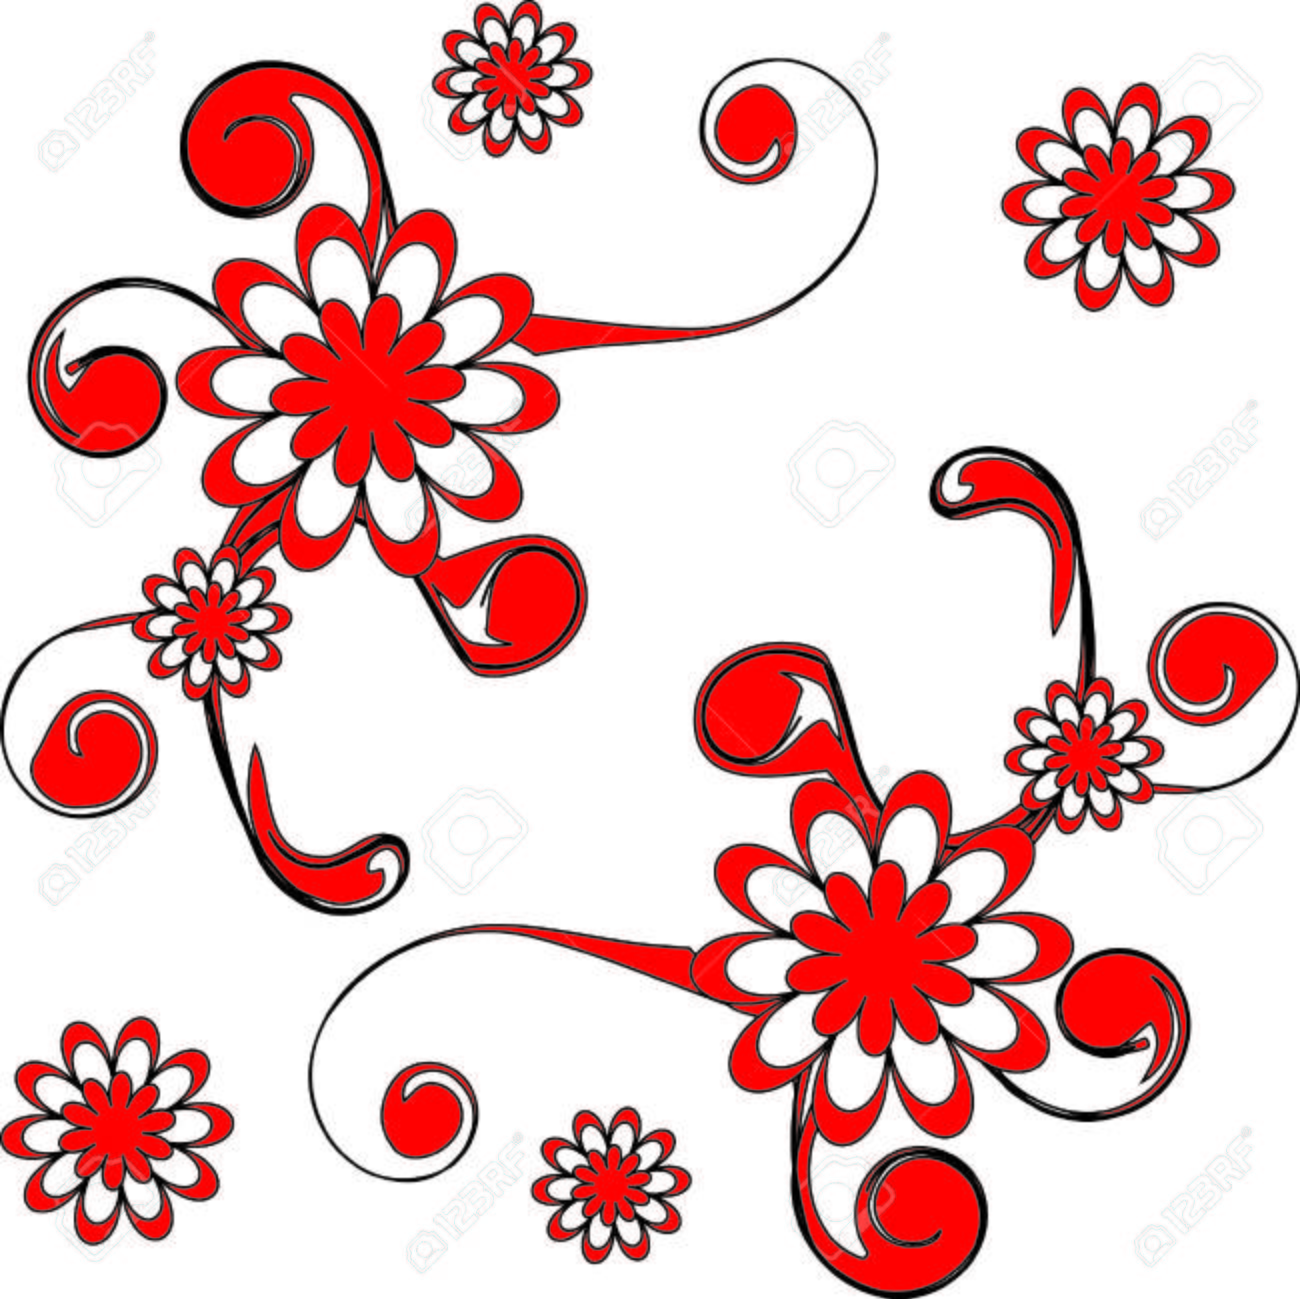 The Bright red flowerses. Much beautiful daisywheels. Stock Vector - 6197602